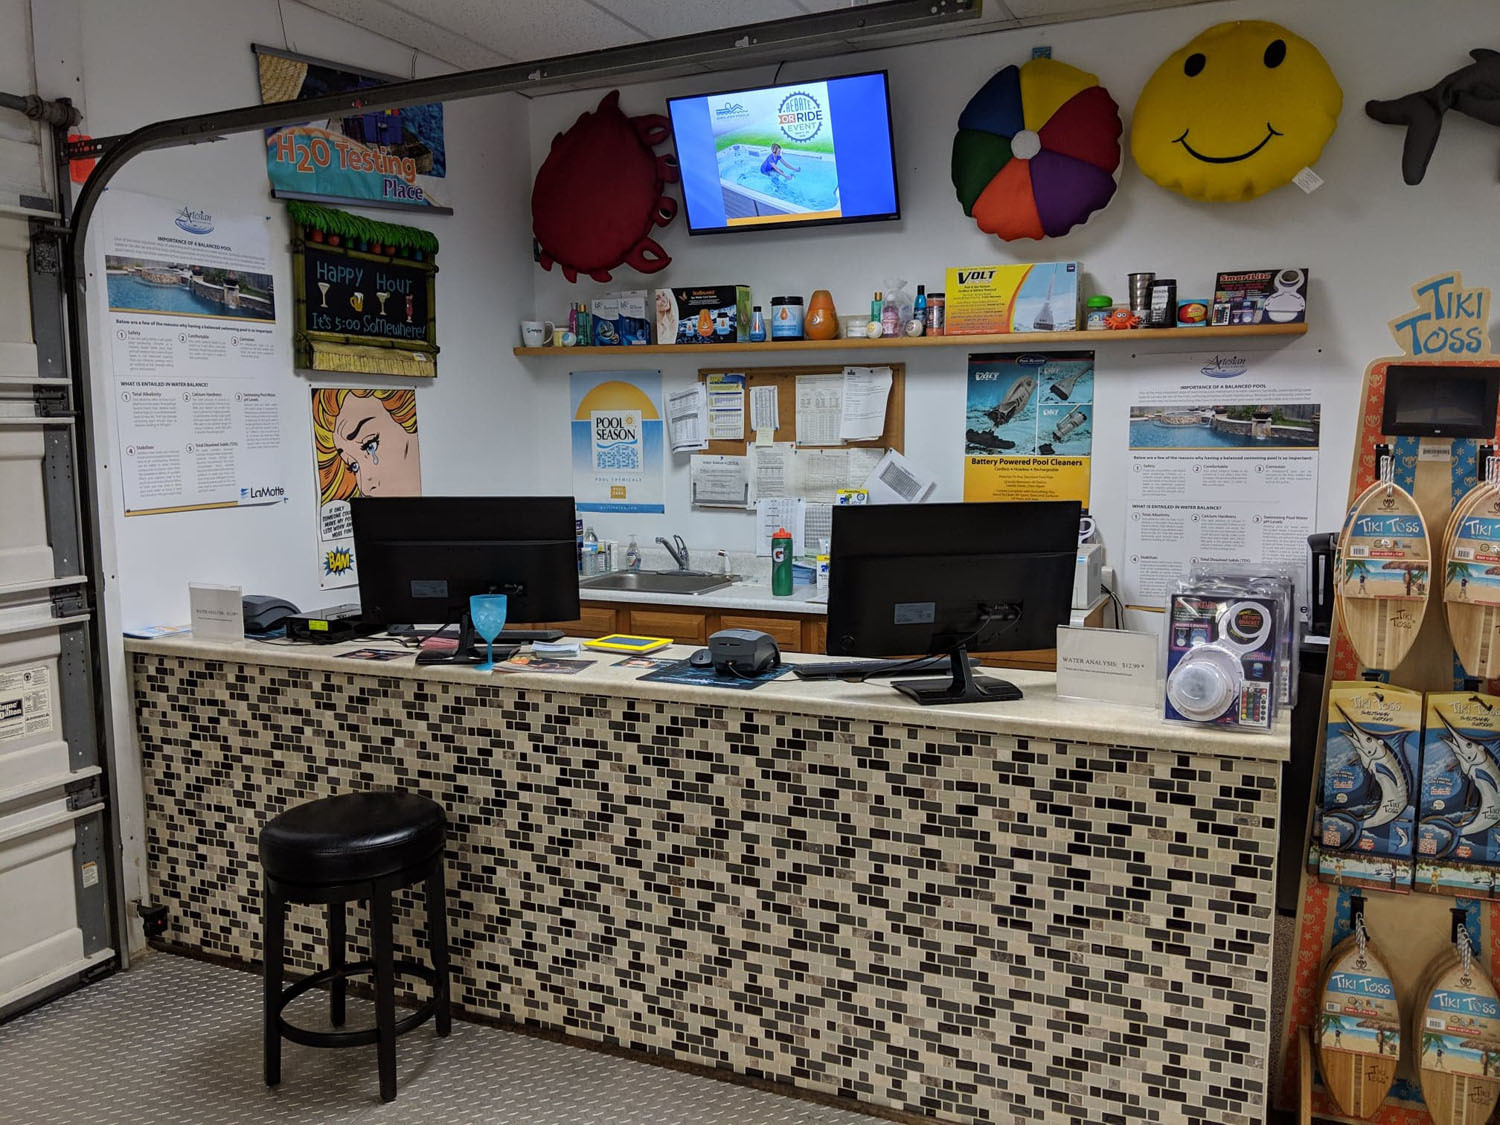 View of the front desk at the pool service department at the Bloomsburg showroom